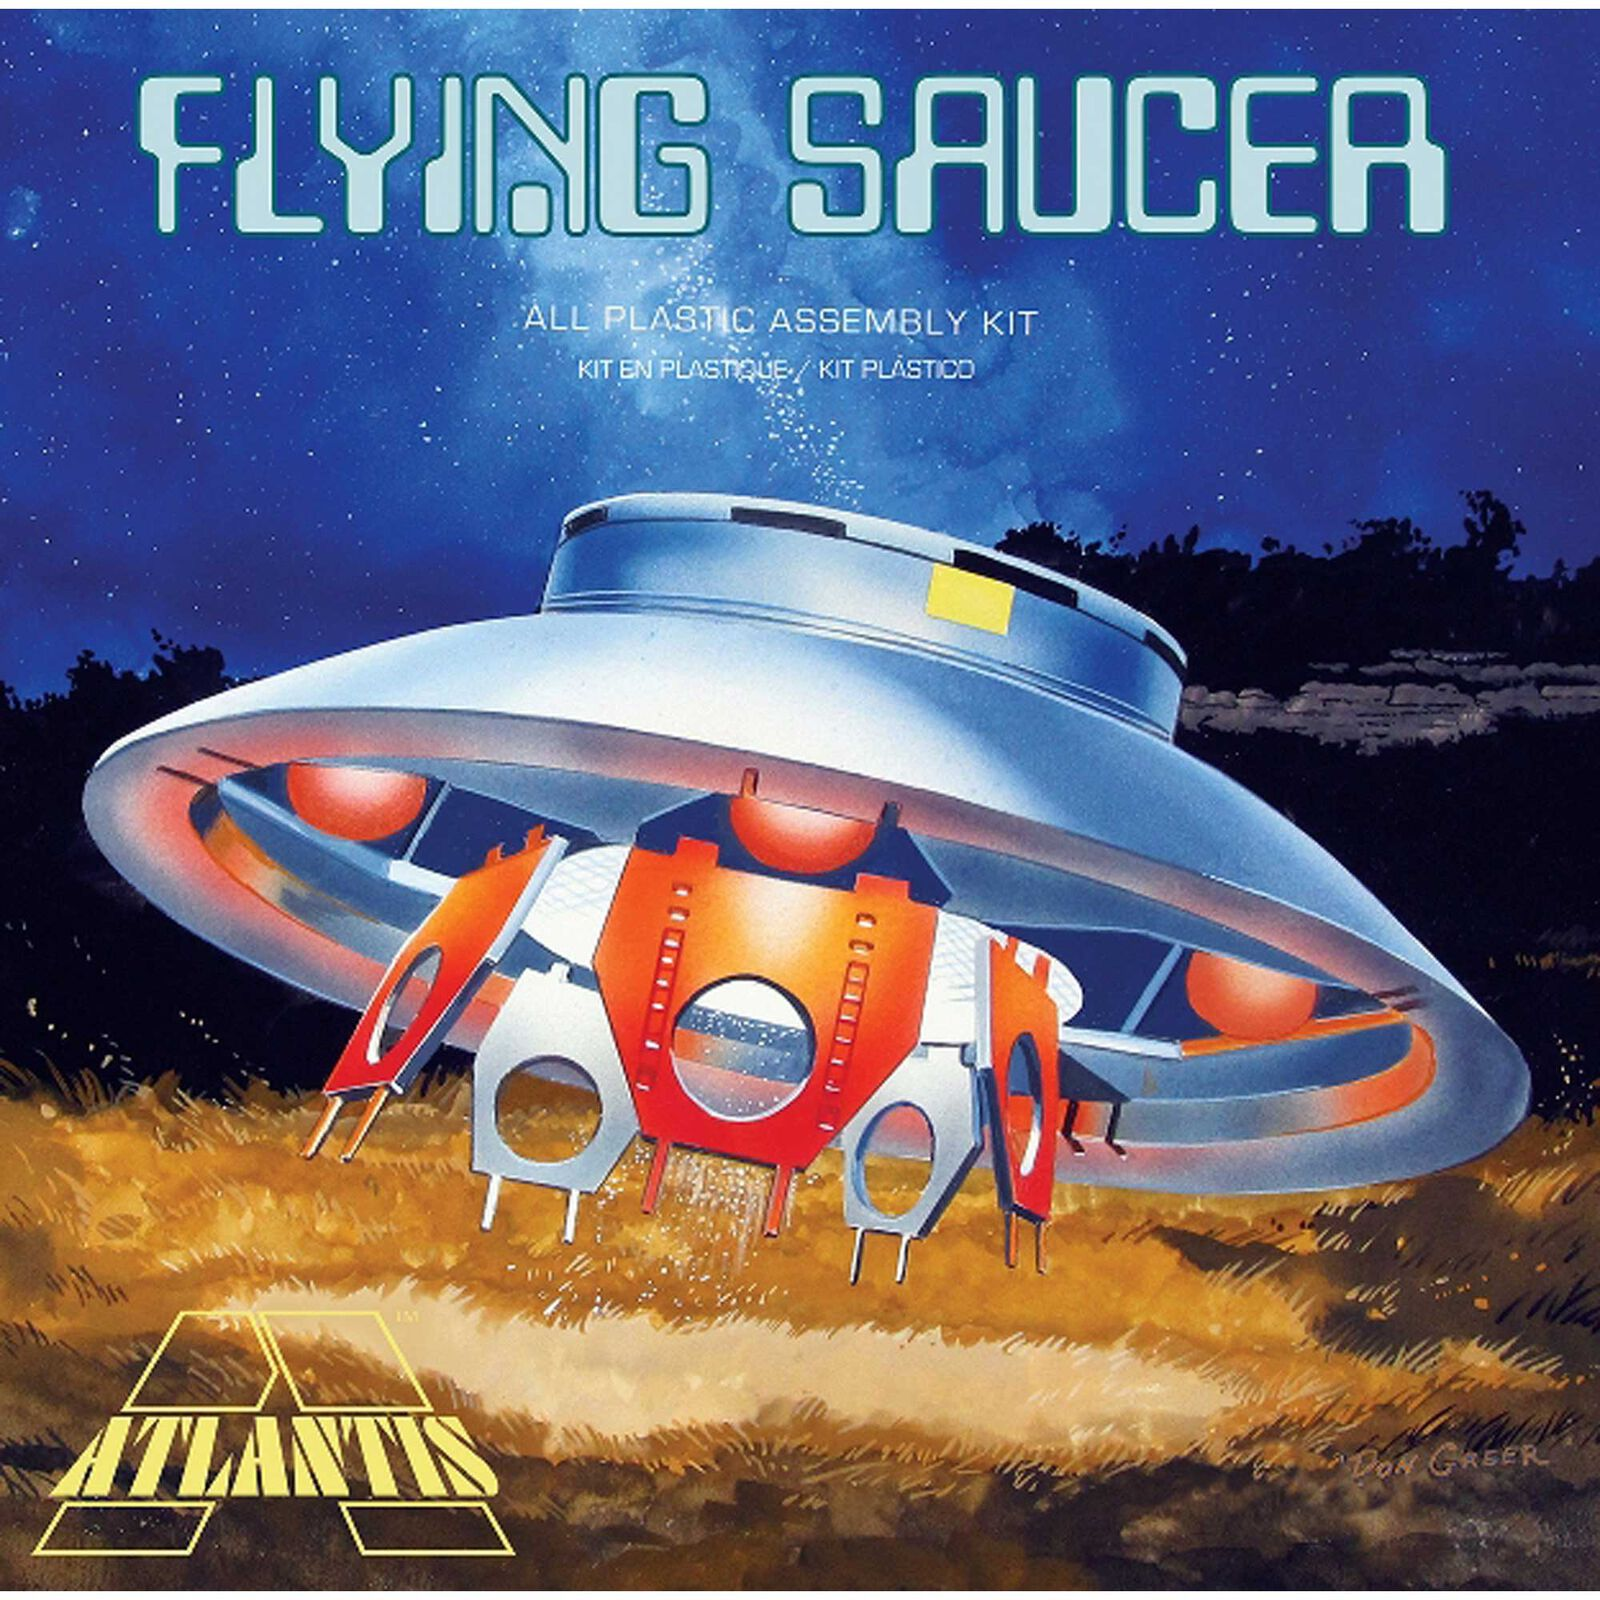 The Flying Saucer UFO (Invaders), 1/72